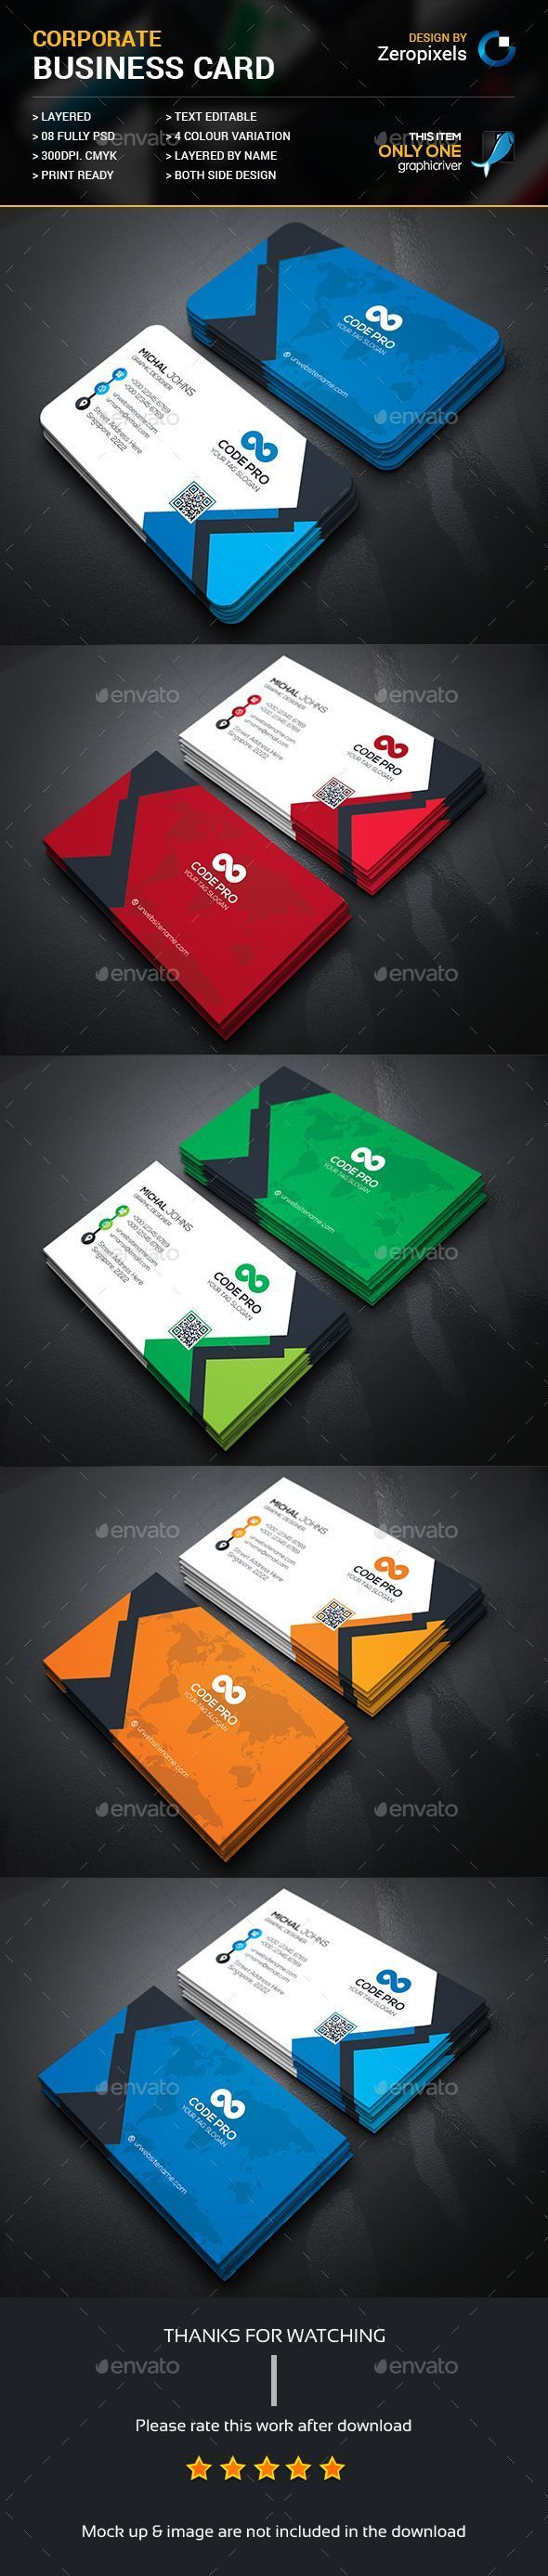 Creative Business Card - Business Cards Print Templates #businesscardmaker